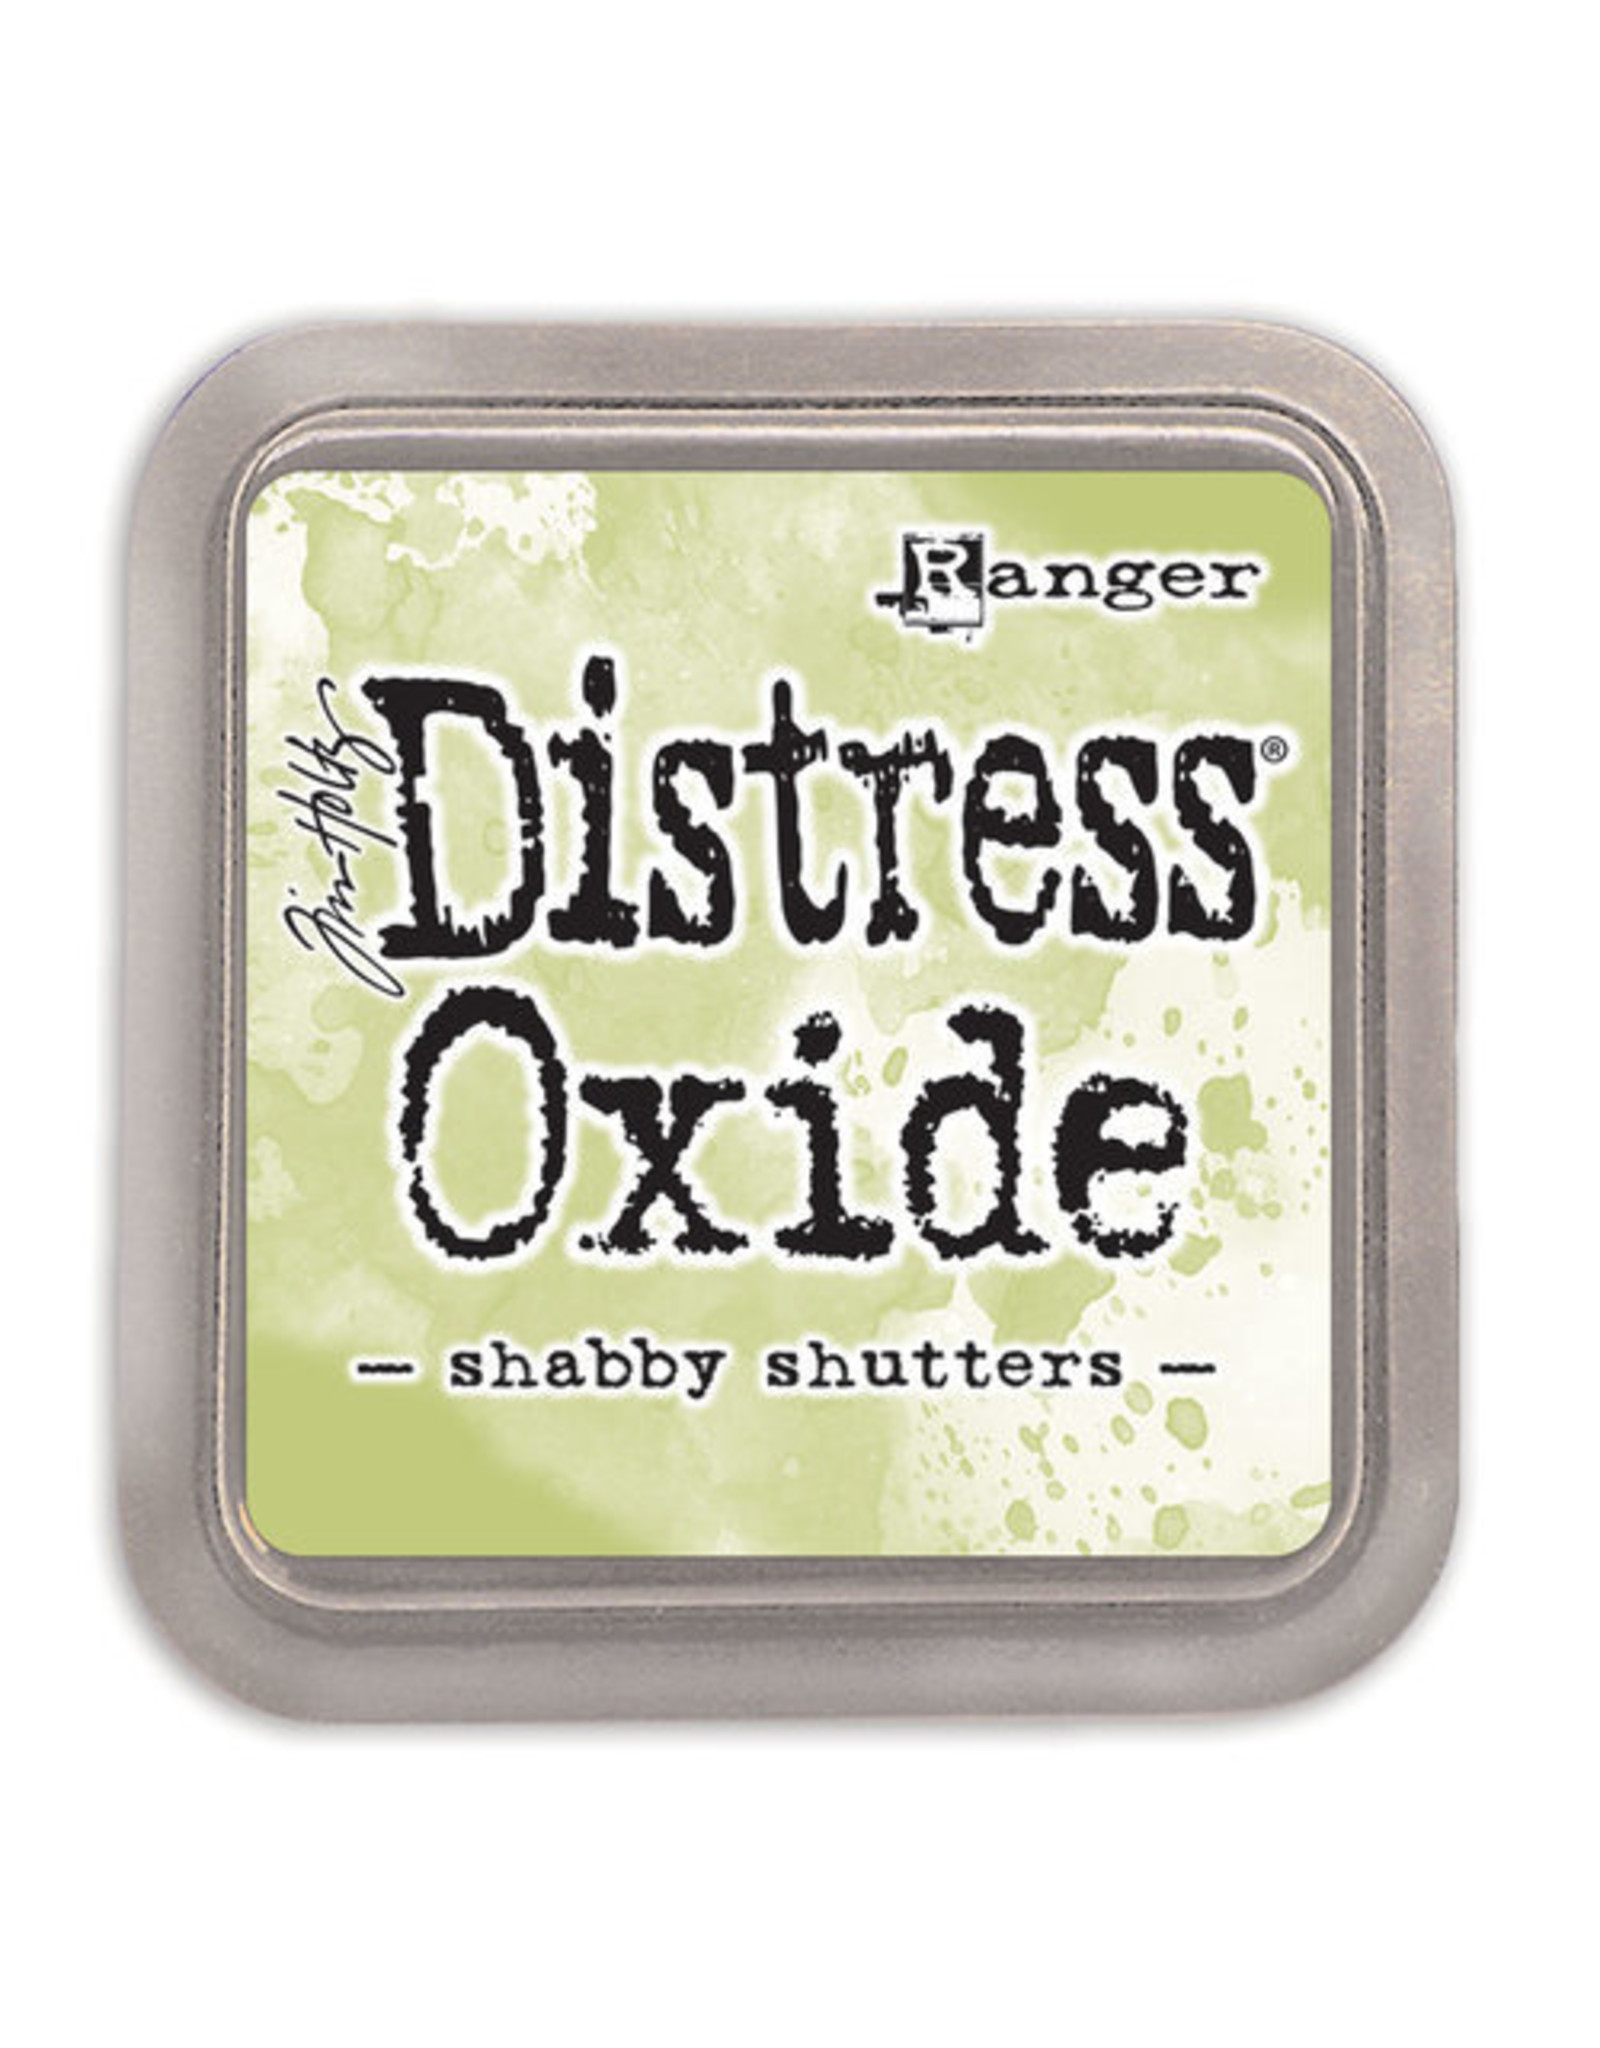 Ranger Distress Oxide Ink Pad - Shabby Shutters